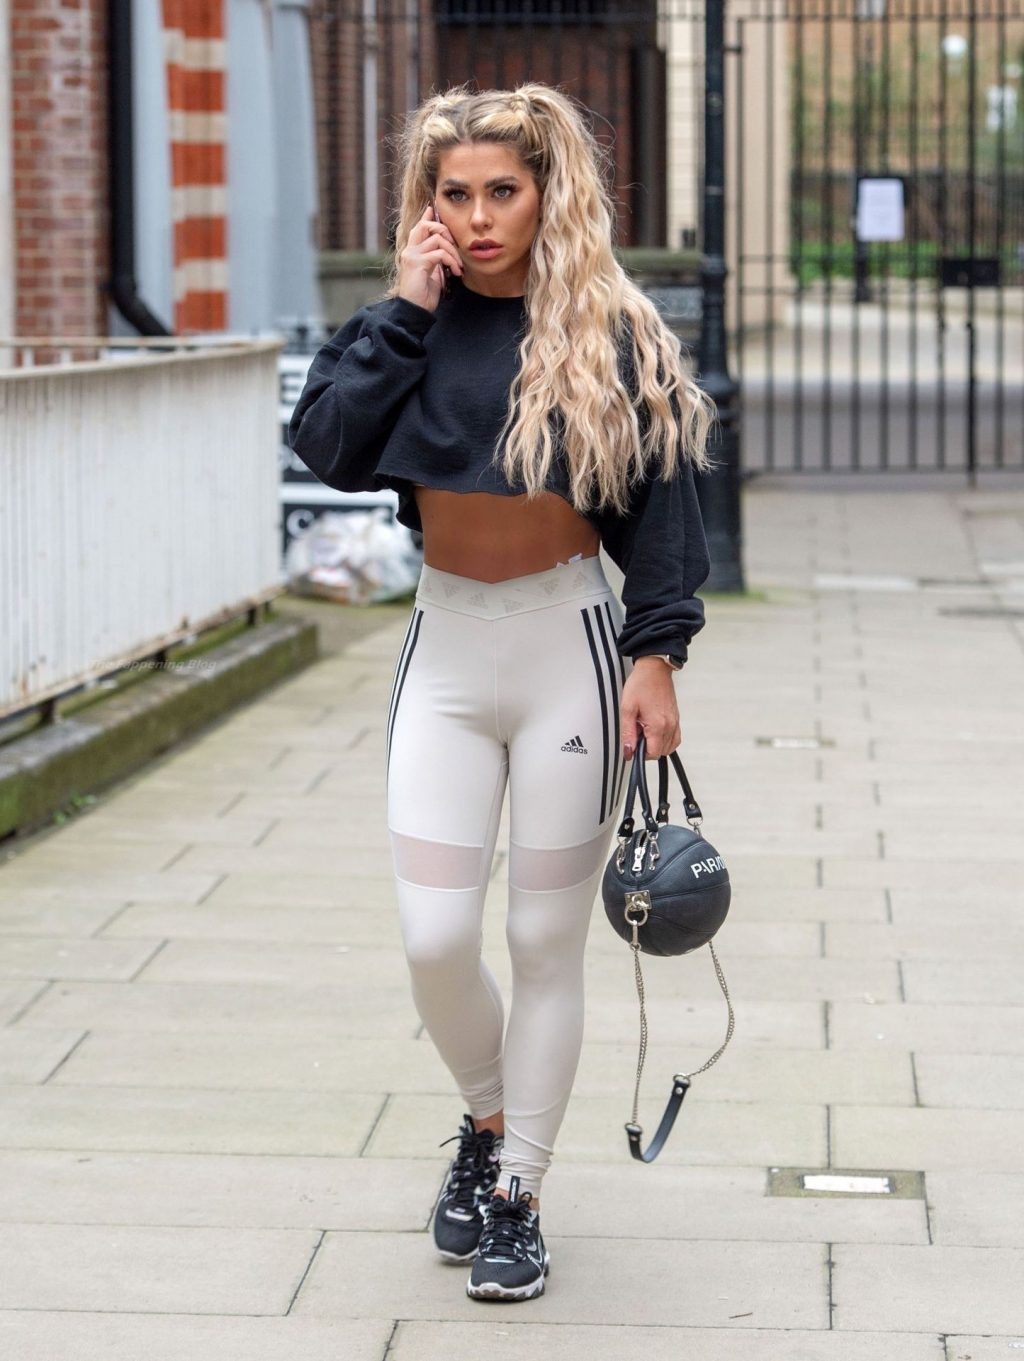 Bianca Gascoigne is Seen as She Leaves Her Central London Flat (14 Photos)